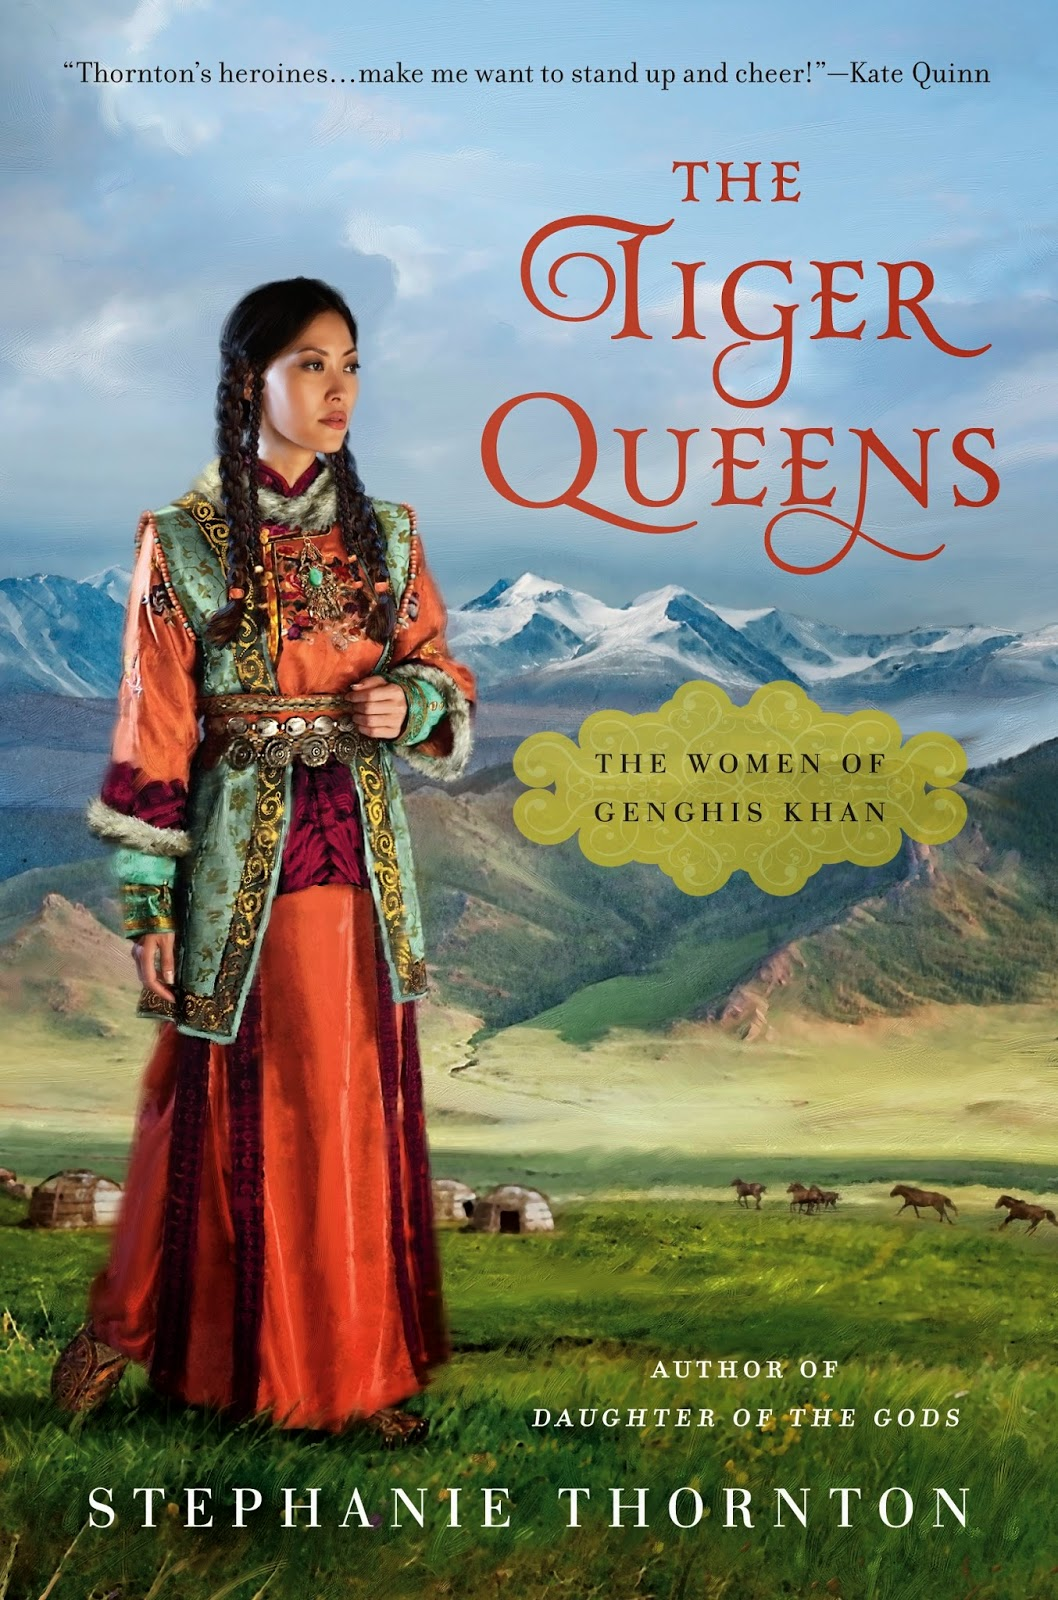 02_The Tiger Queens